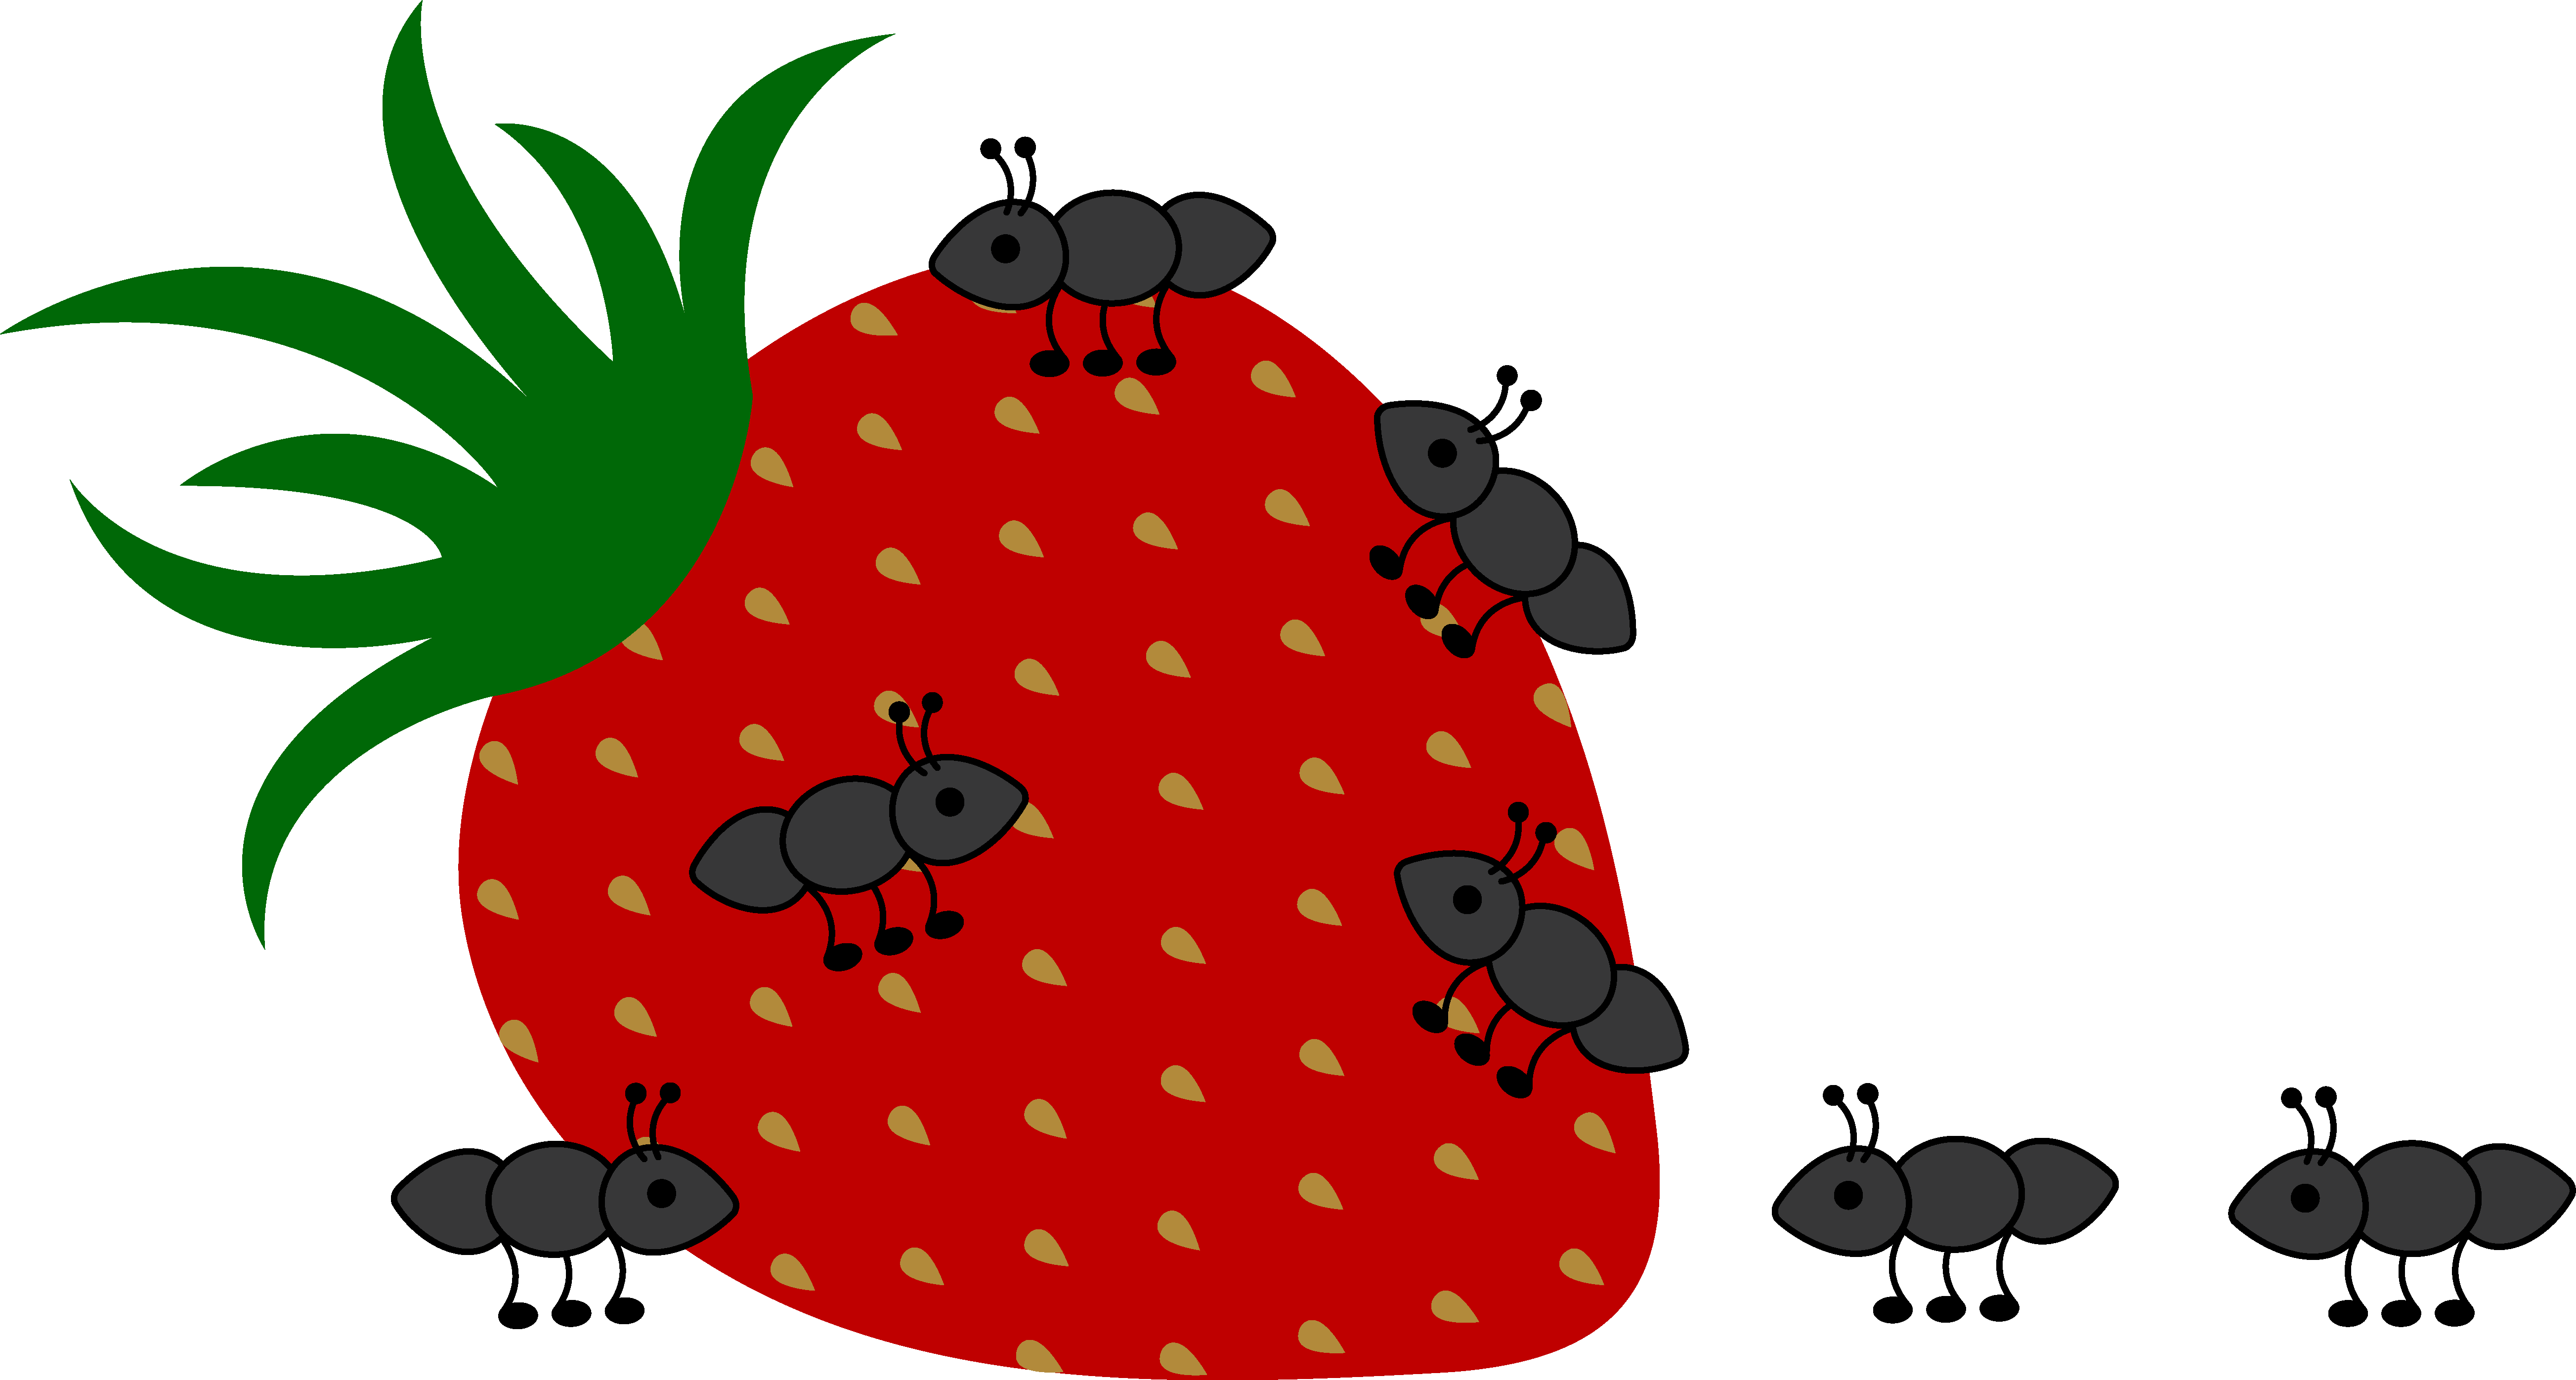 Free Cartoon Ant Pictures, Download Free Clip Art, Free Clip.